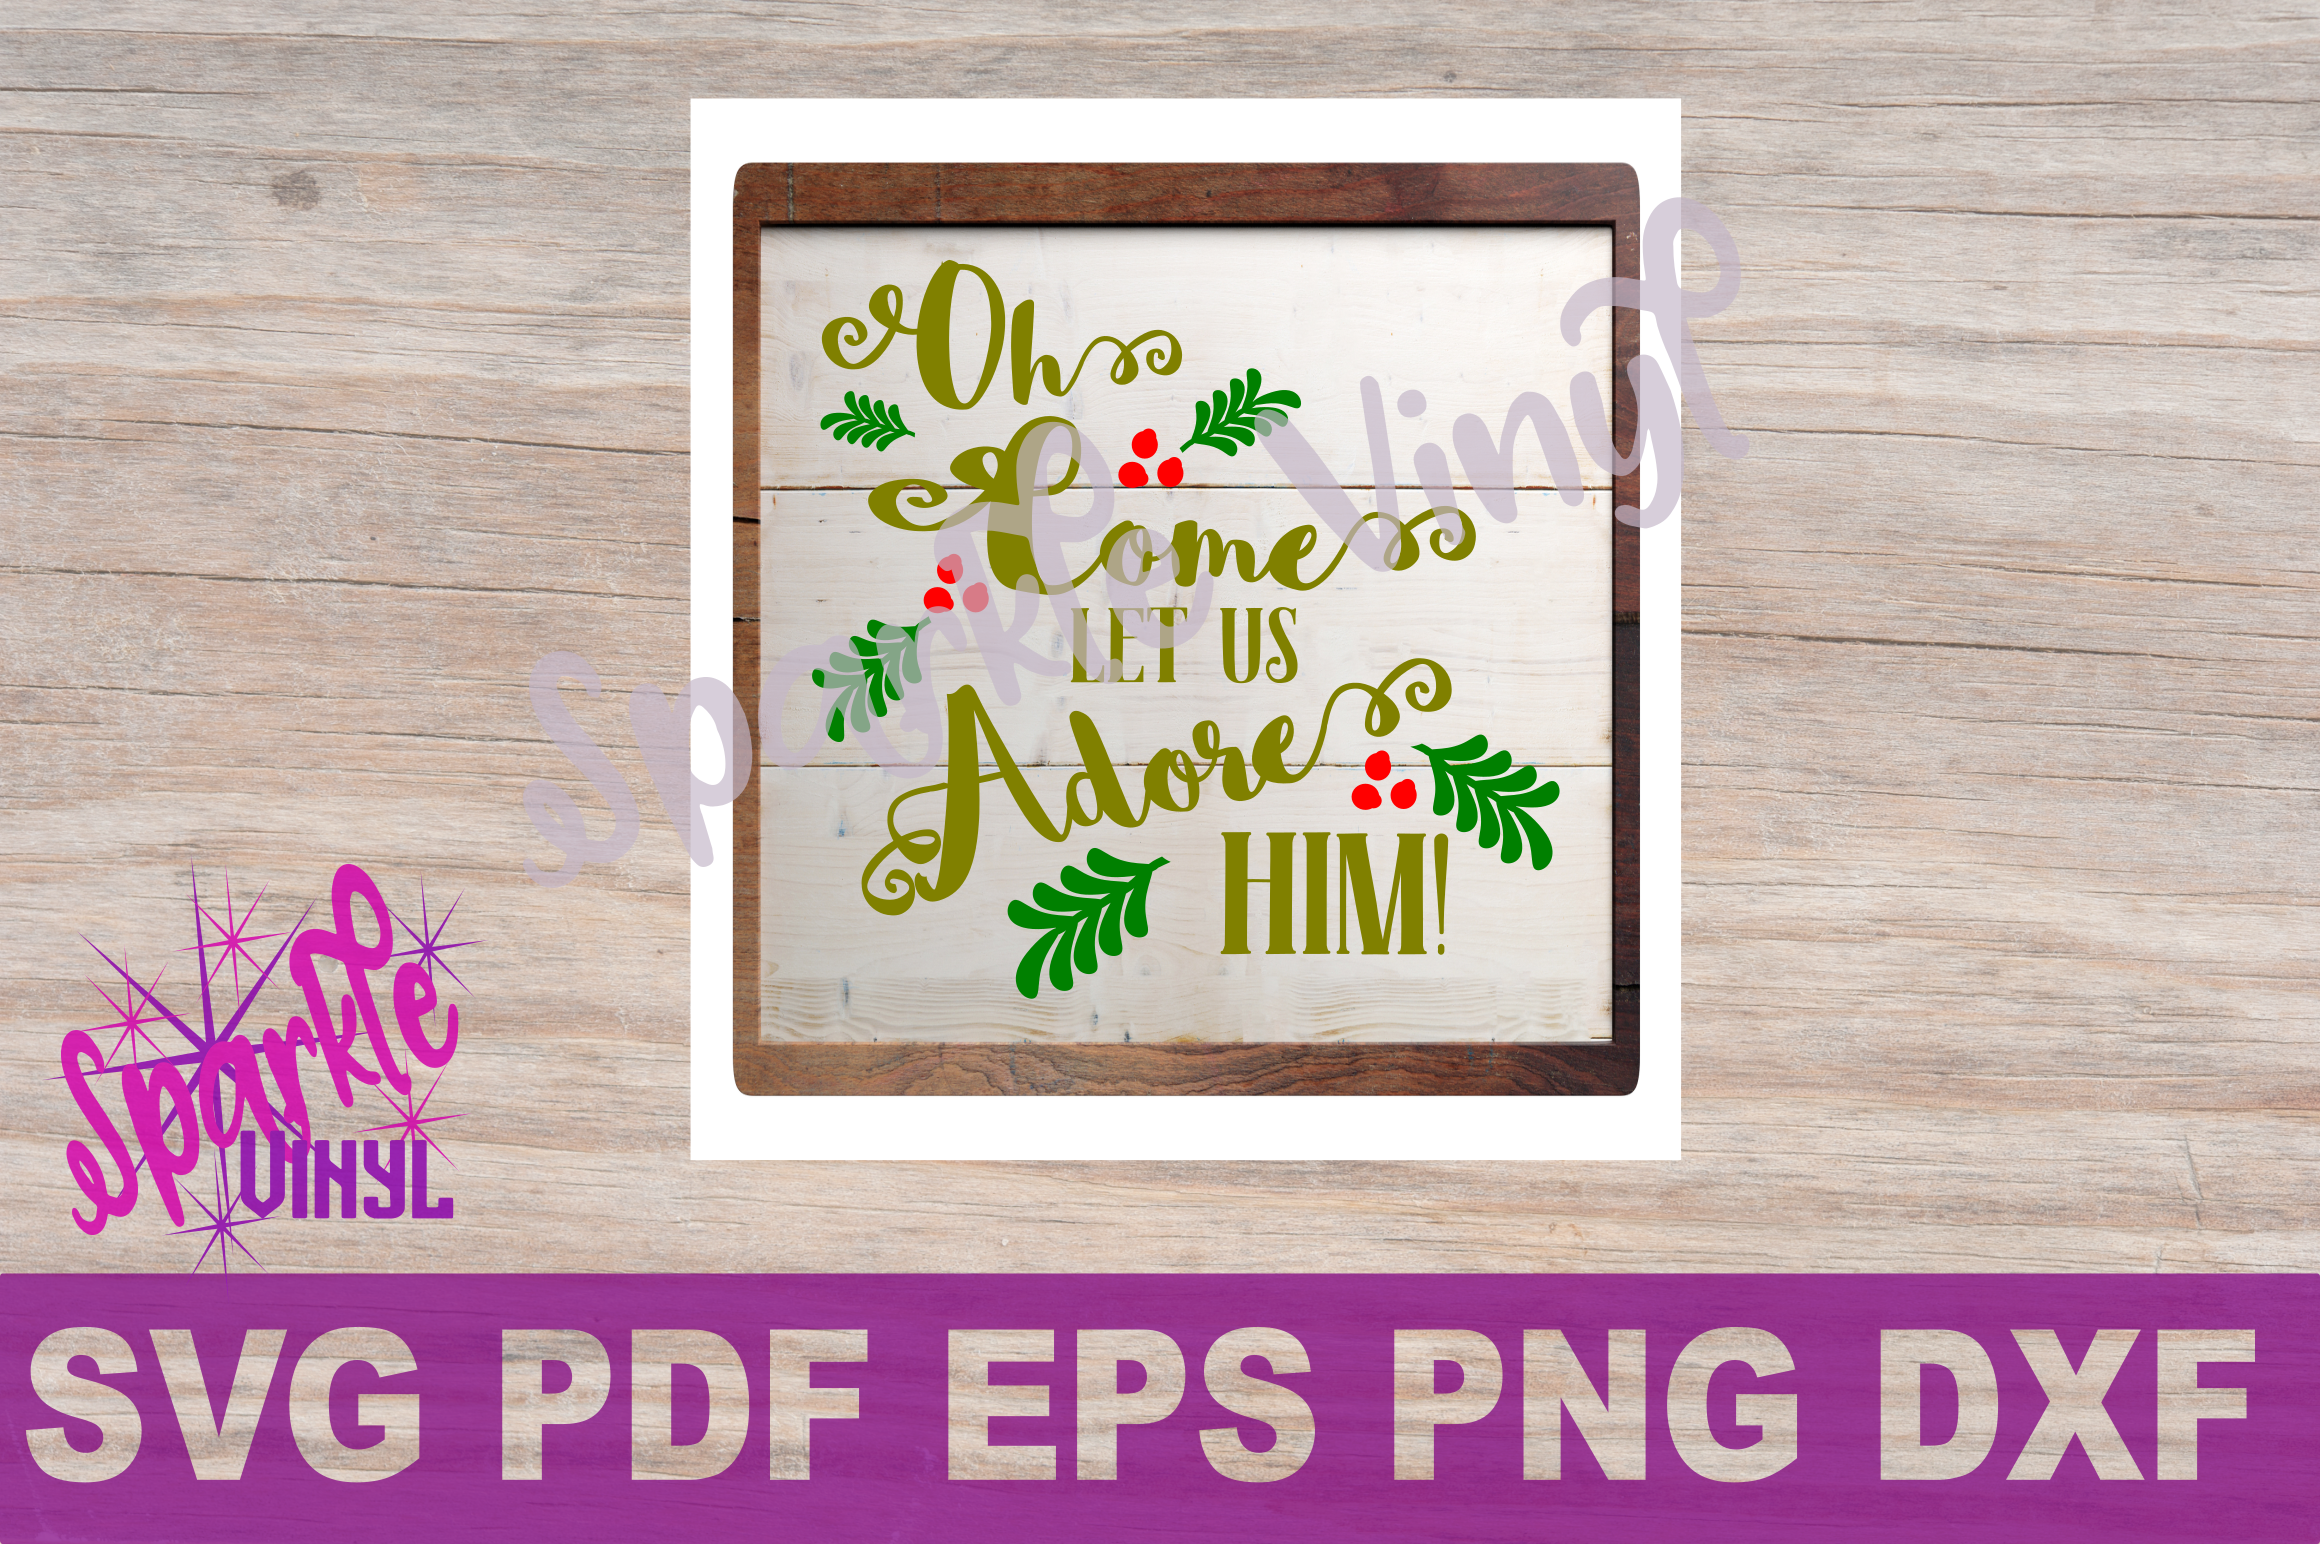 Svg Christmas Sign Stencil Bundle printable svg dxf png pdf esp files for cricut or silhouette Merry Christmas Trees Sold here Mistletoe svg example image 11